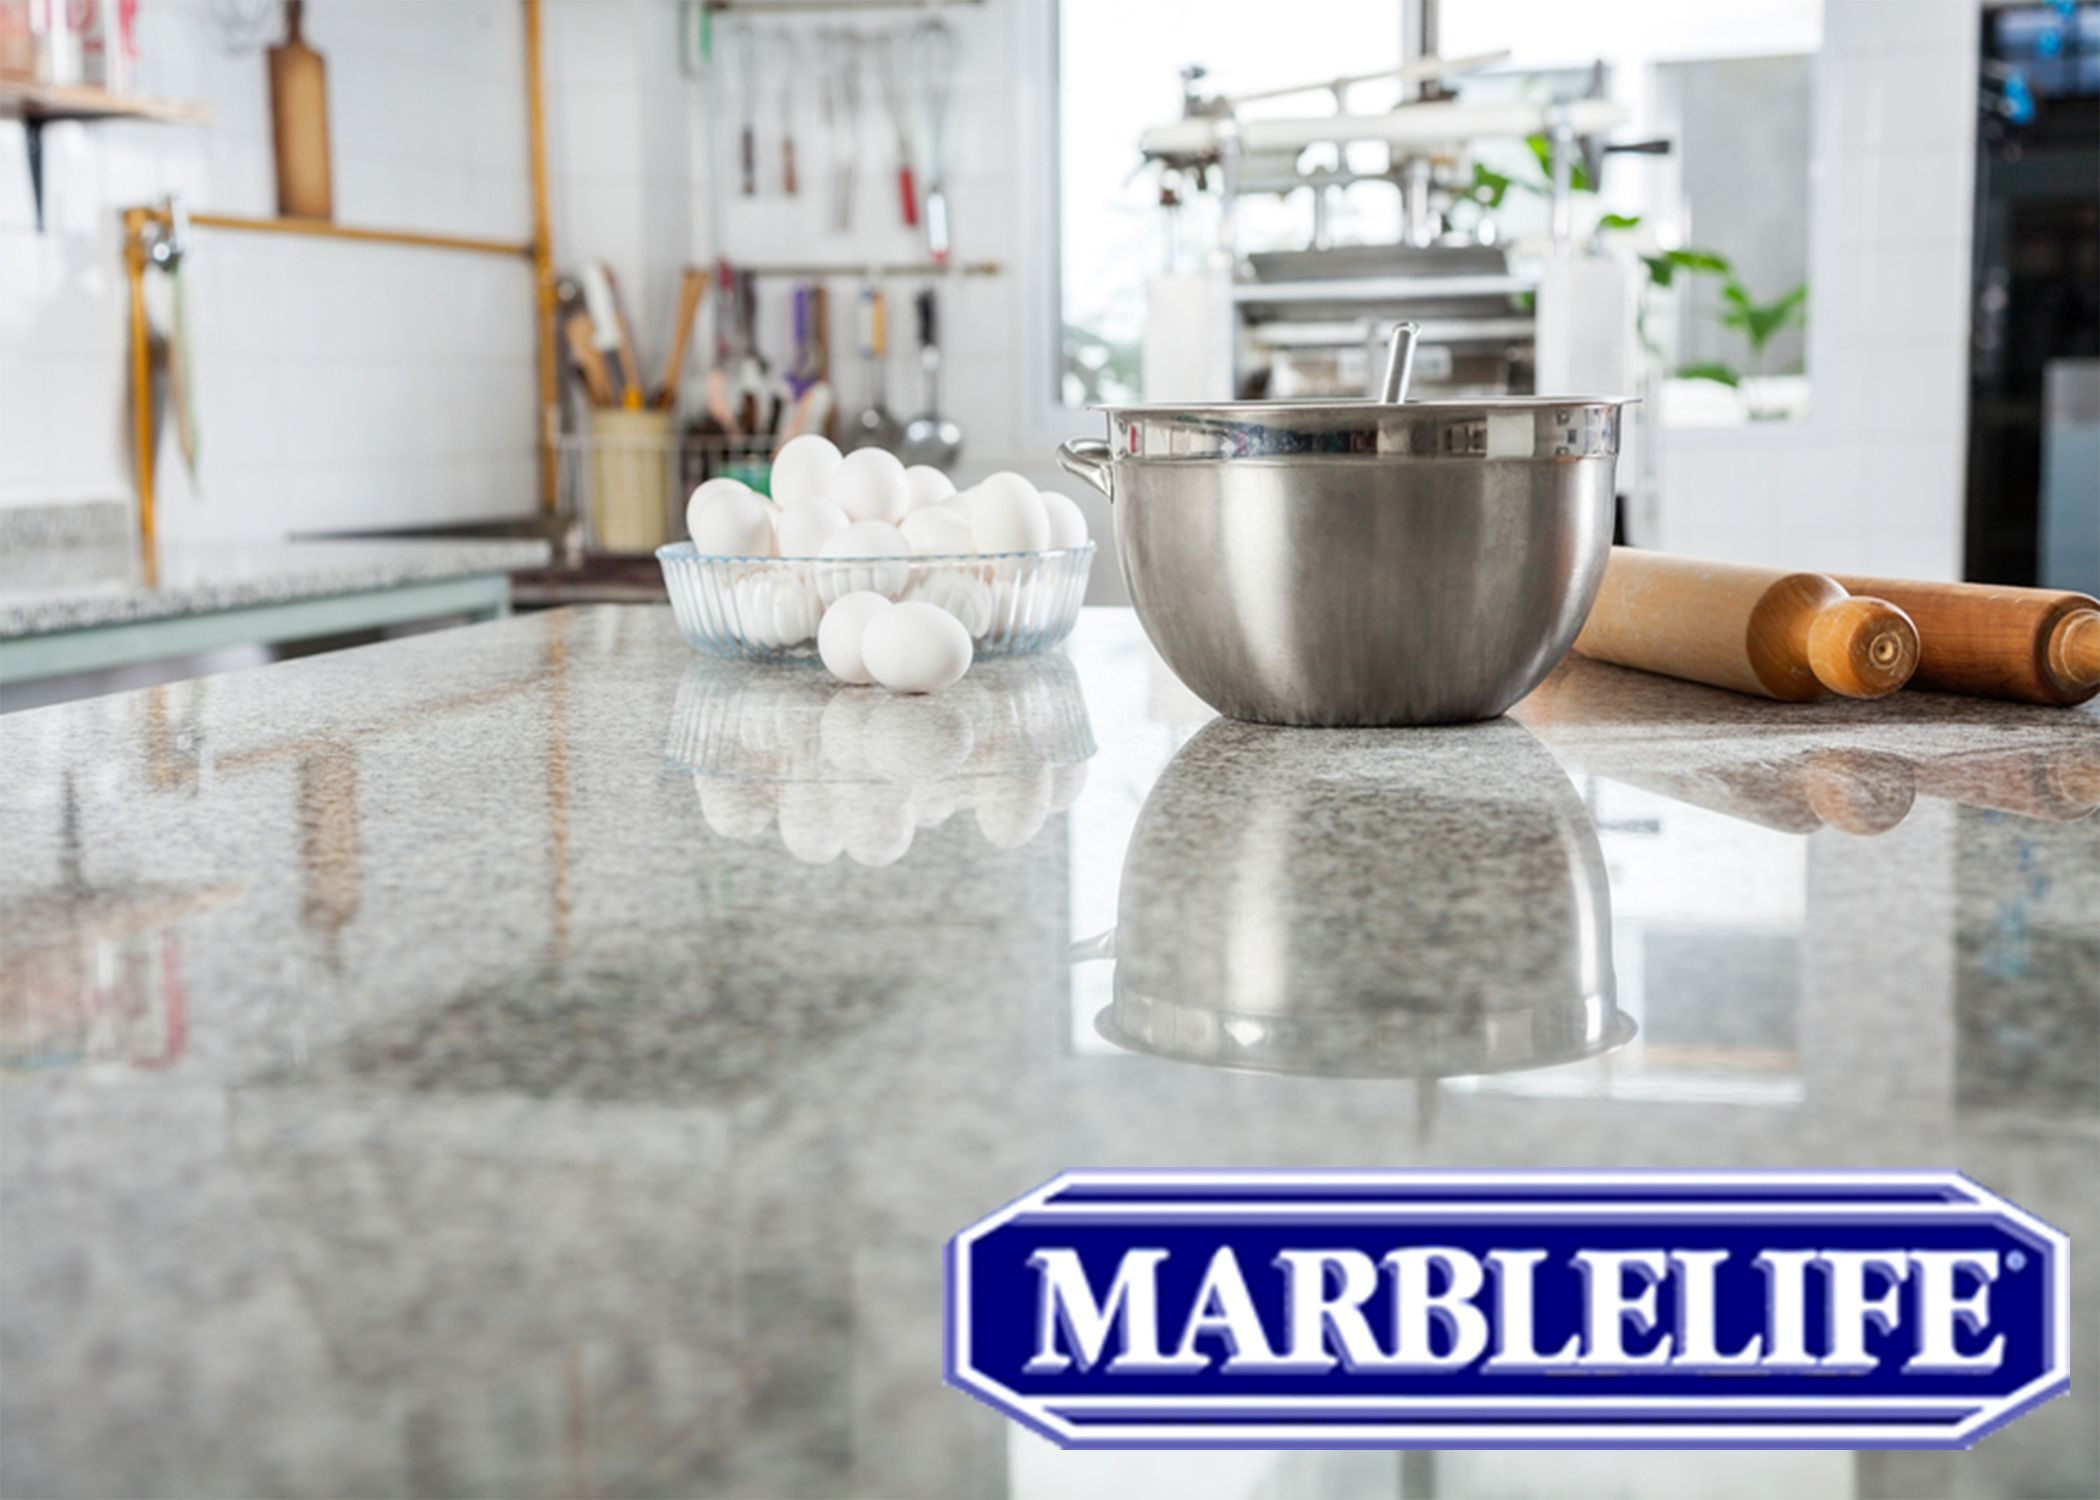 Marble is a beautiful natural surface with lots of